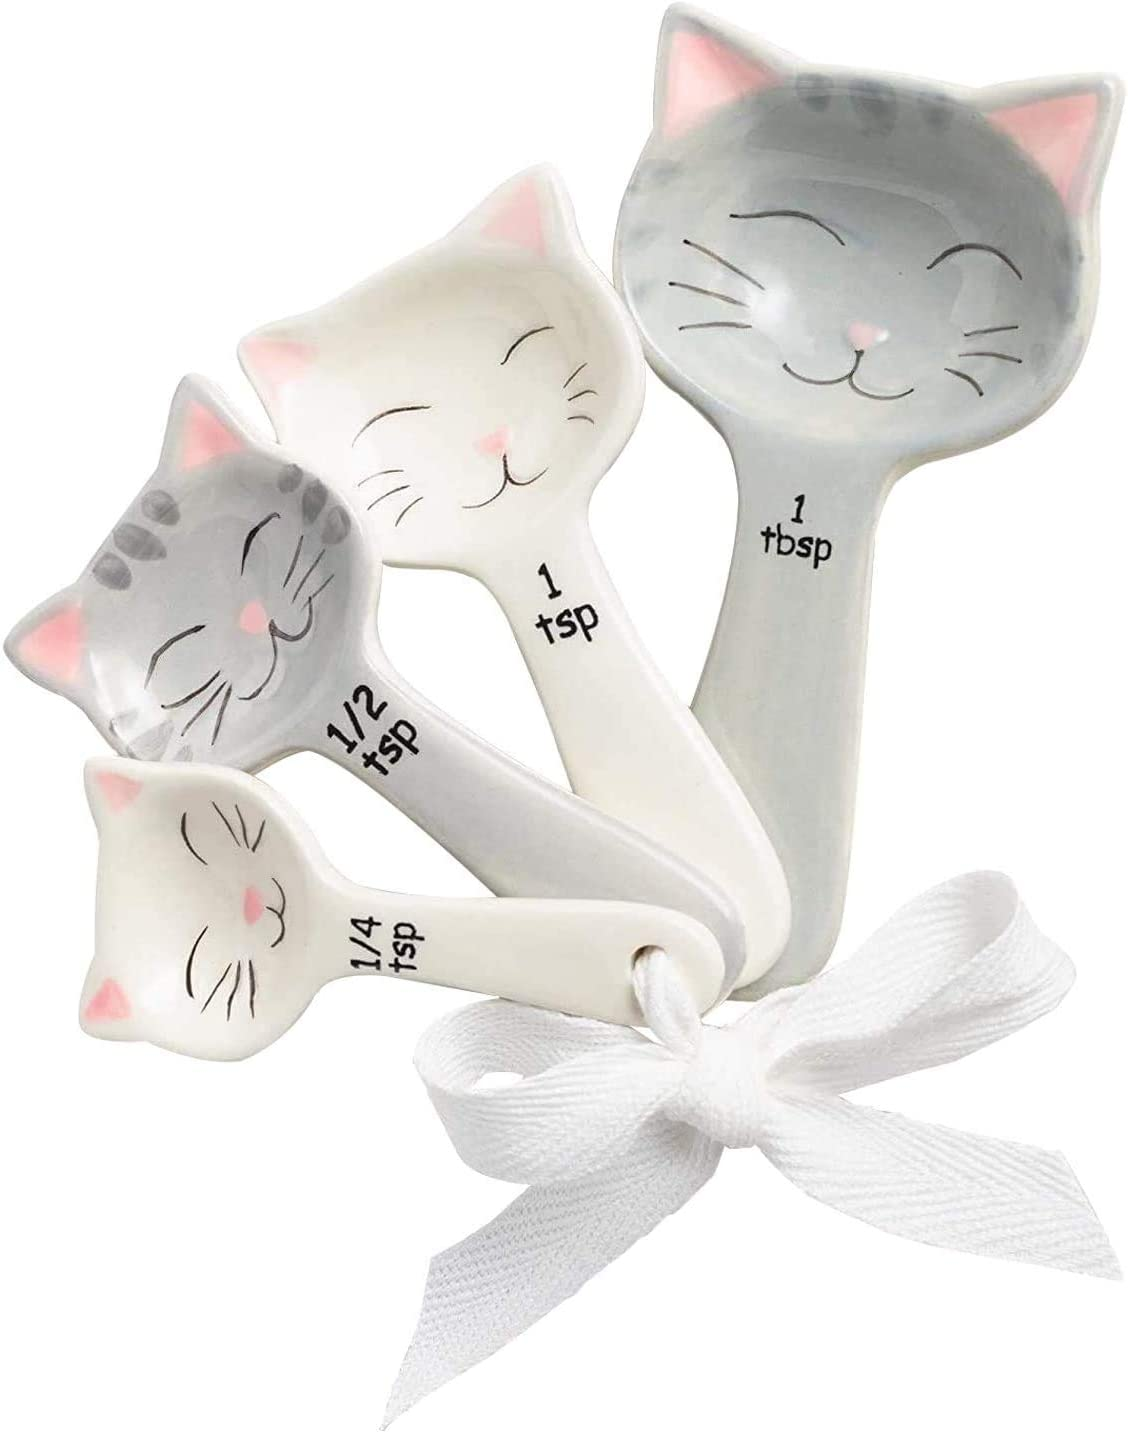 Cat Shaped Ceramic Measuring Spoons - Perfect for Cat Lover - Cat Ceramic Measuring Spoons Baking Tool - Creative Functional Kitchen Decor - Comes in White and Gray - Set of 4